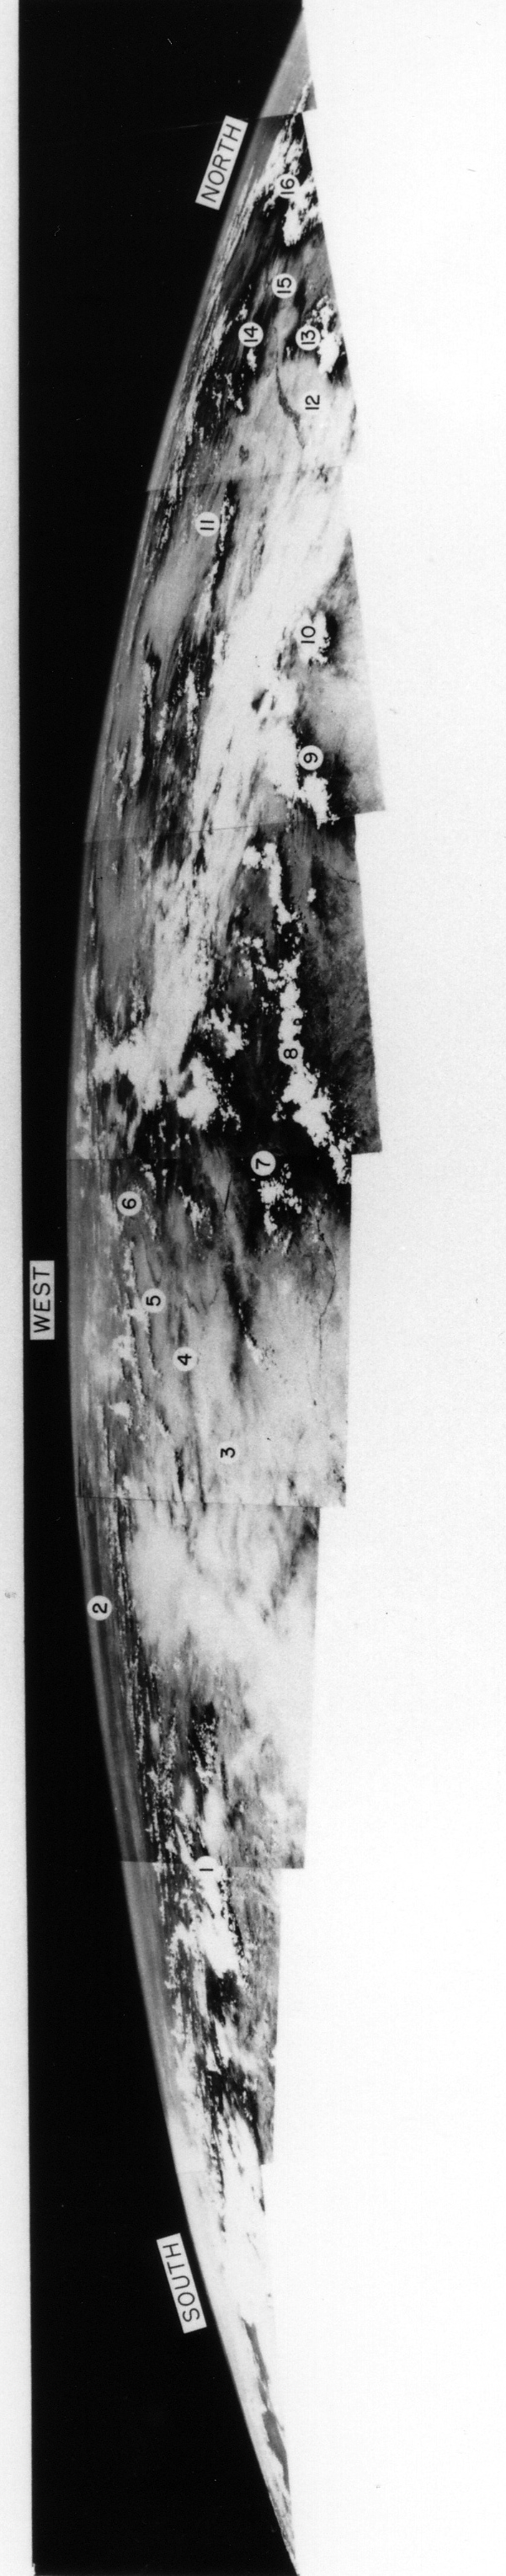 Panorama of the Earth from 1948.